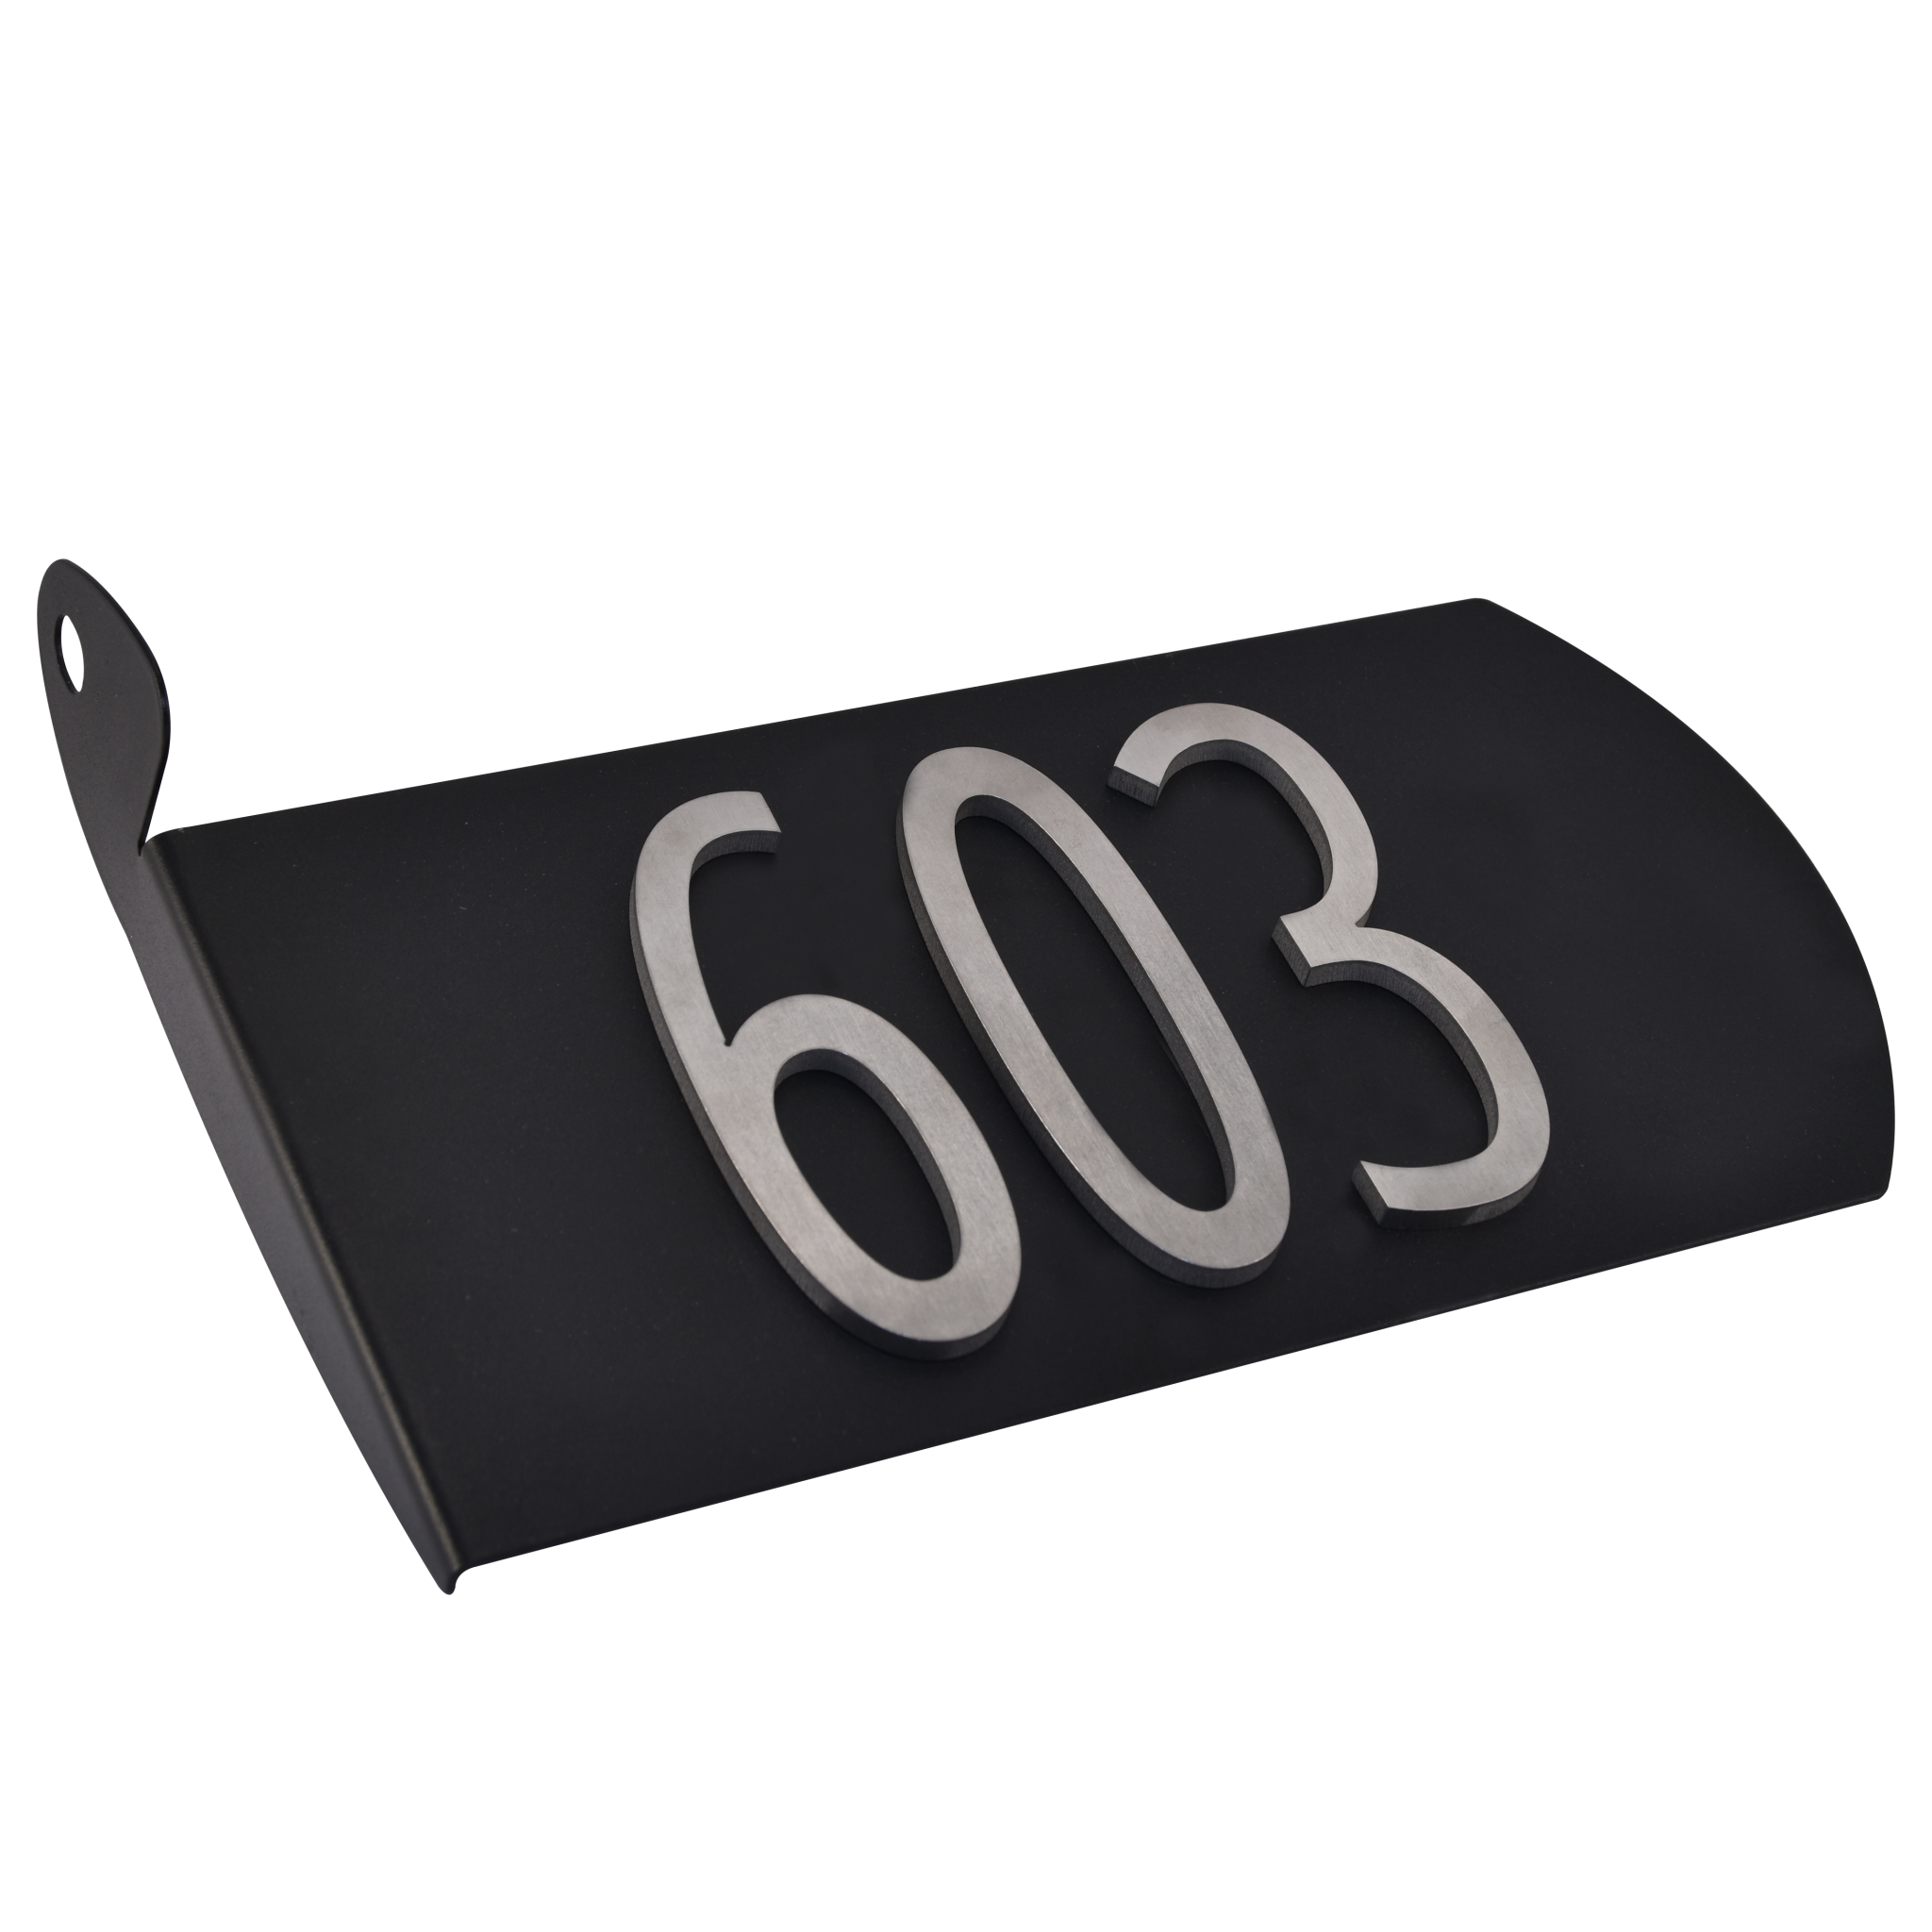 Image of 603 Products SPA-A001 Black Aluminum with Nickel Plated Numbers Spira Address Plate